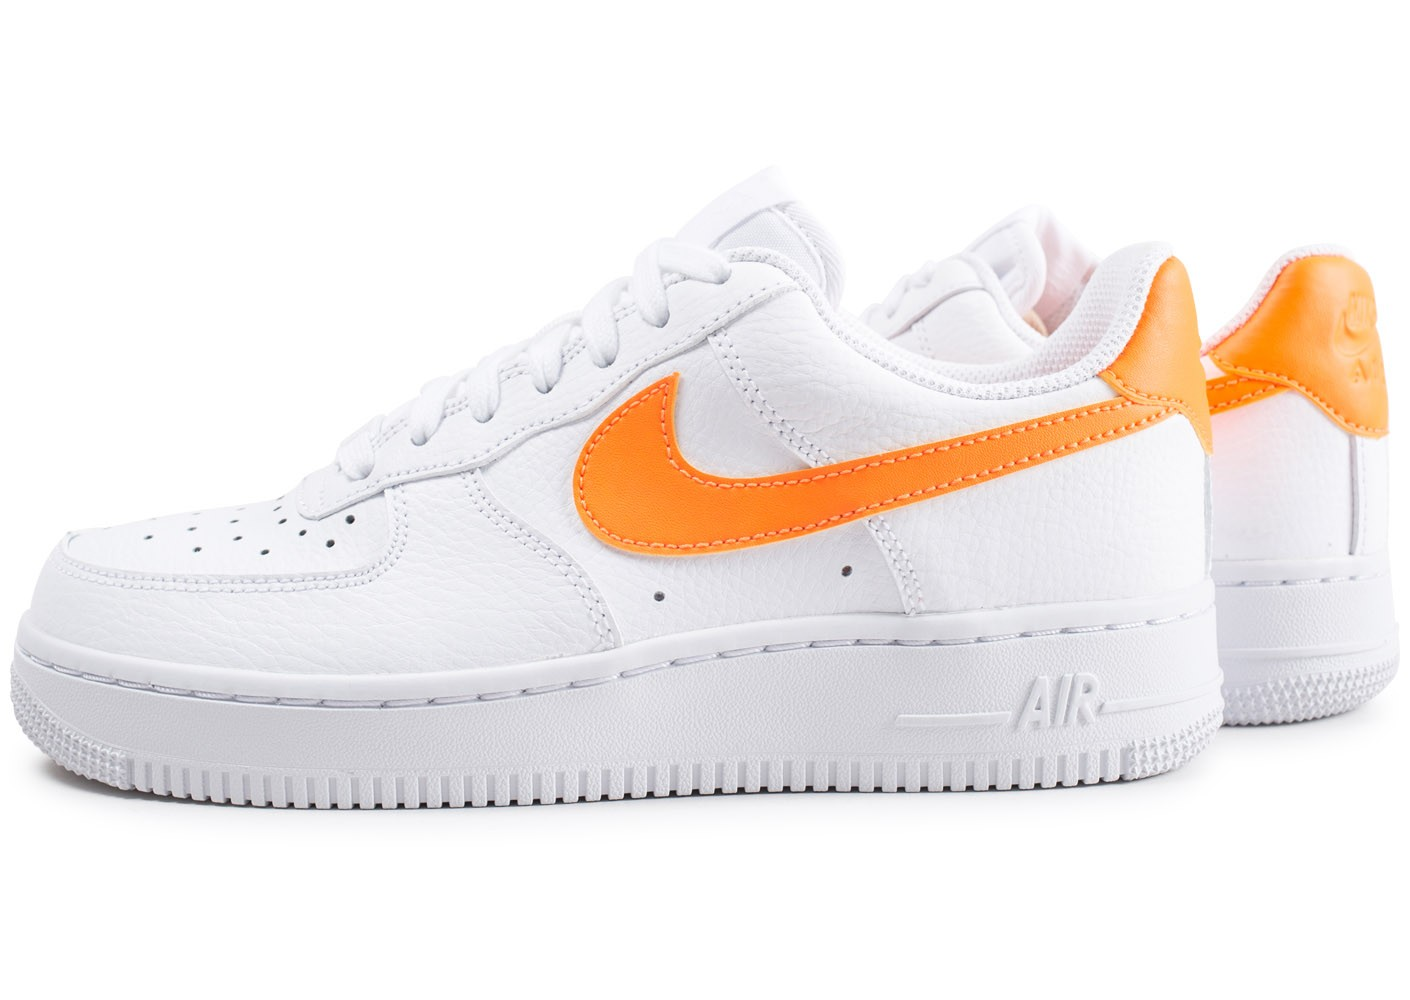 Nike Air Force 1'07 blanche et orange - Chaussures Baskets ...